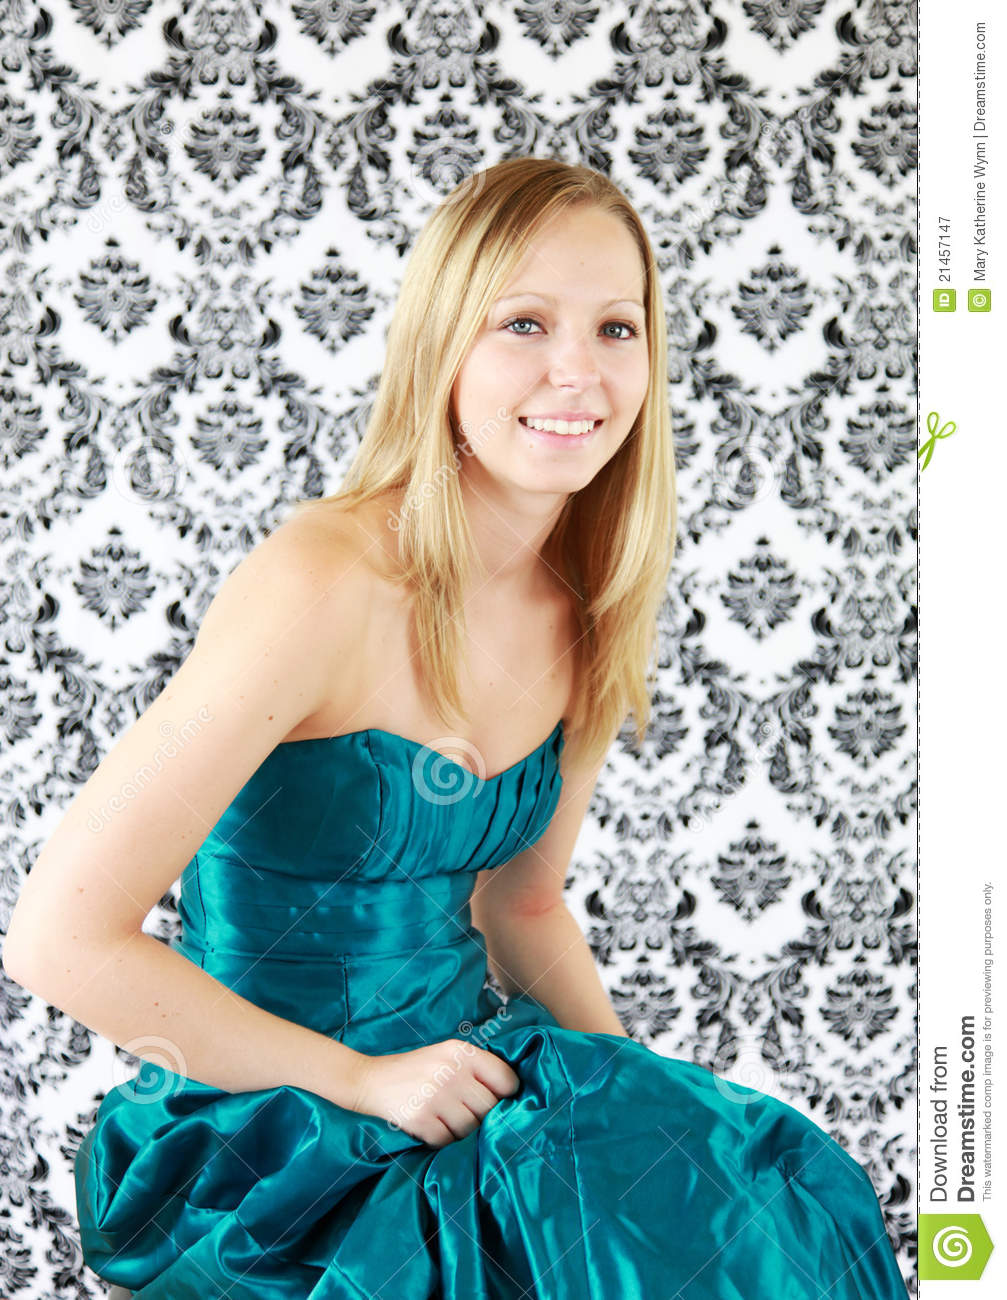 Teenager In Prom Dress Stock Image Image Of Prom Background 21457147